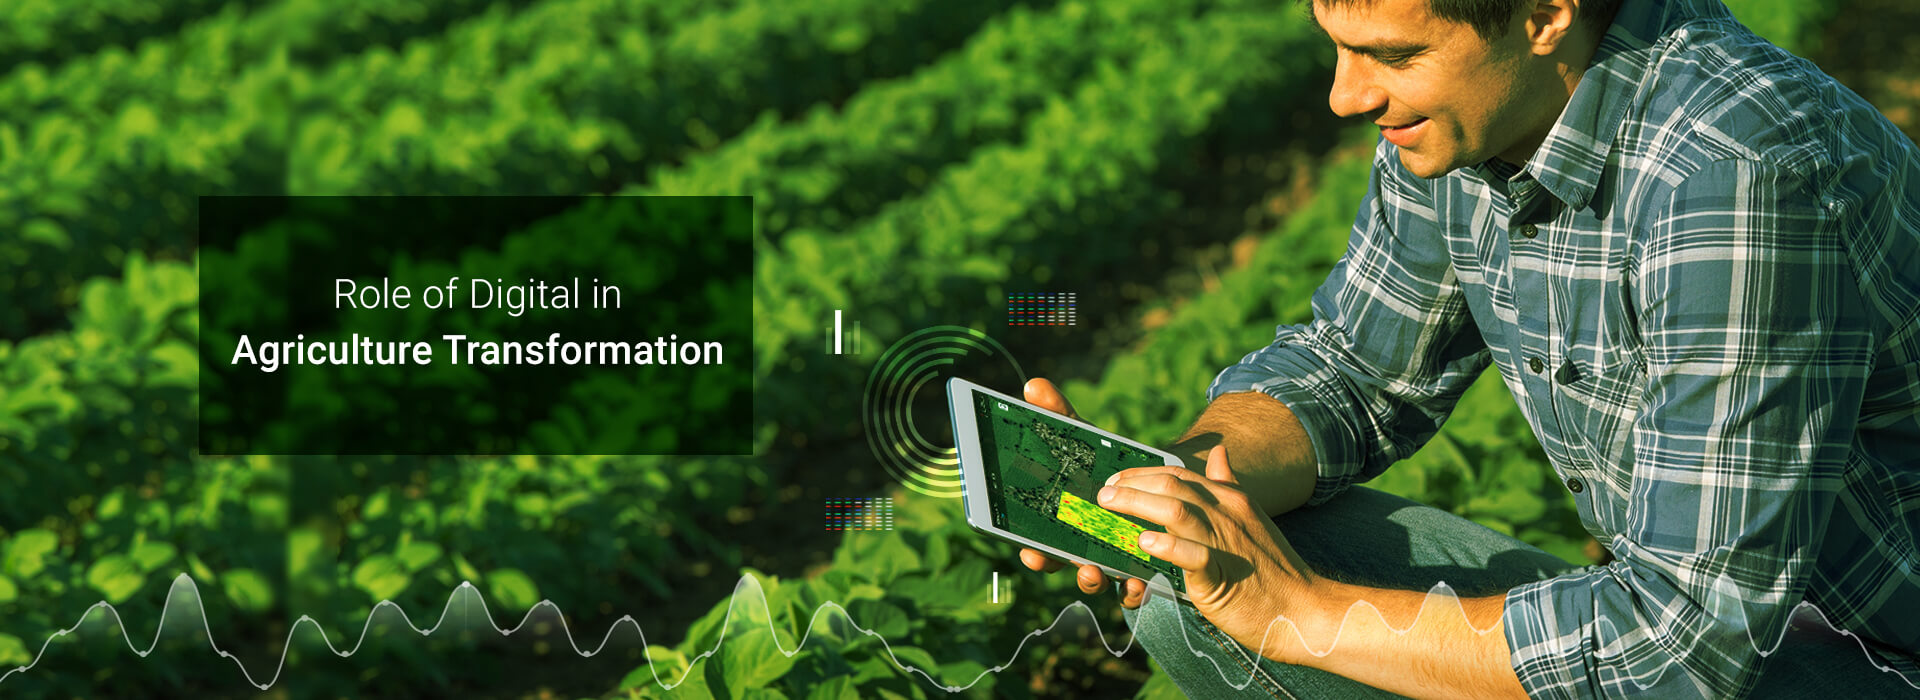 technology innovations in agriculture